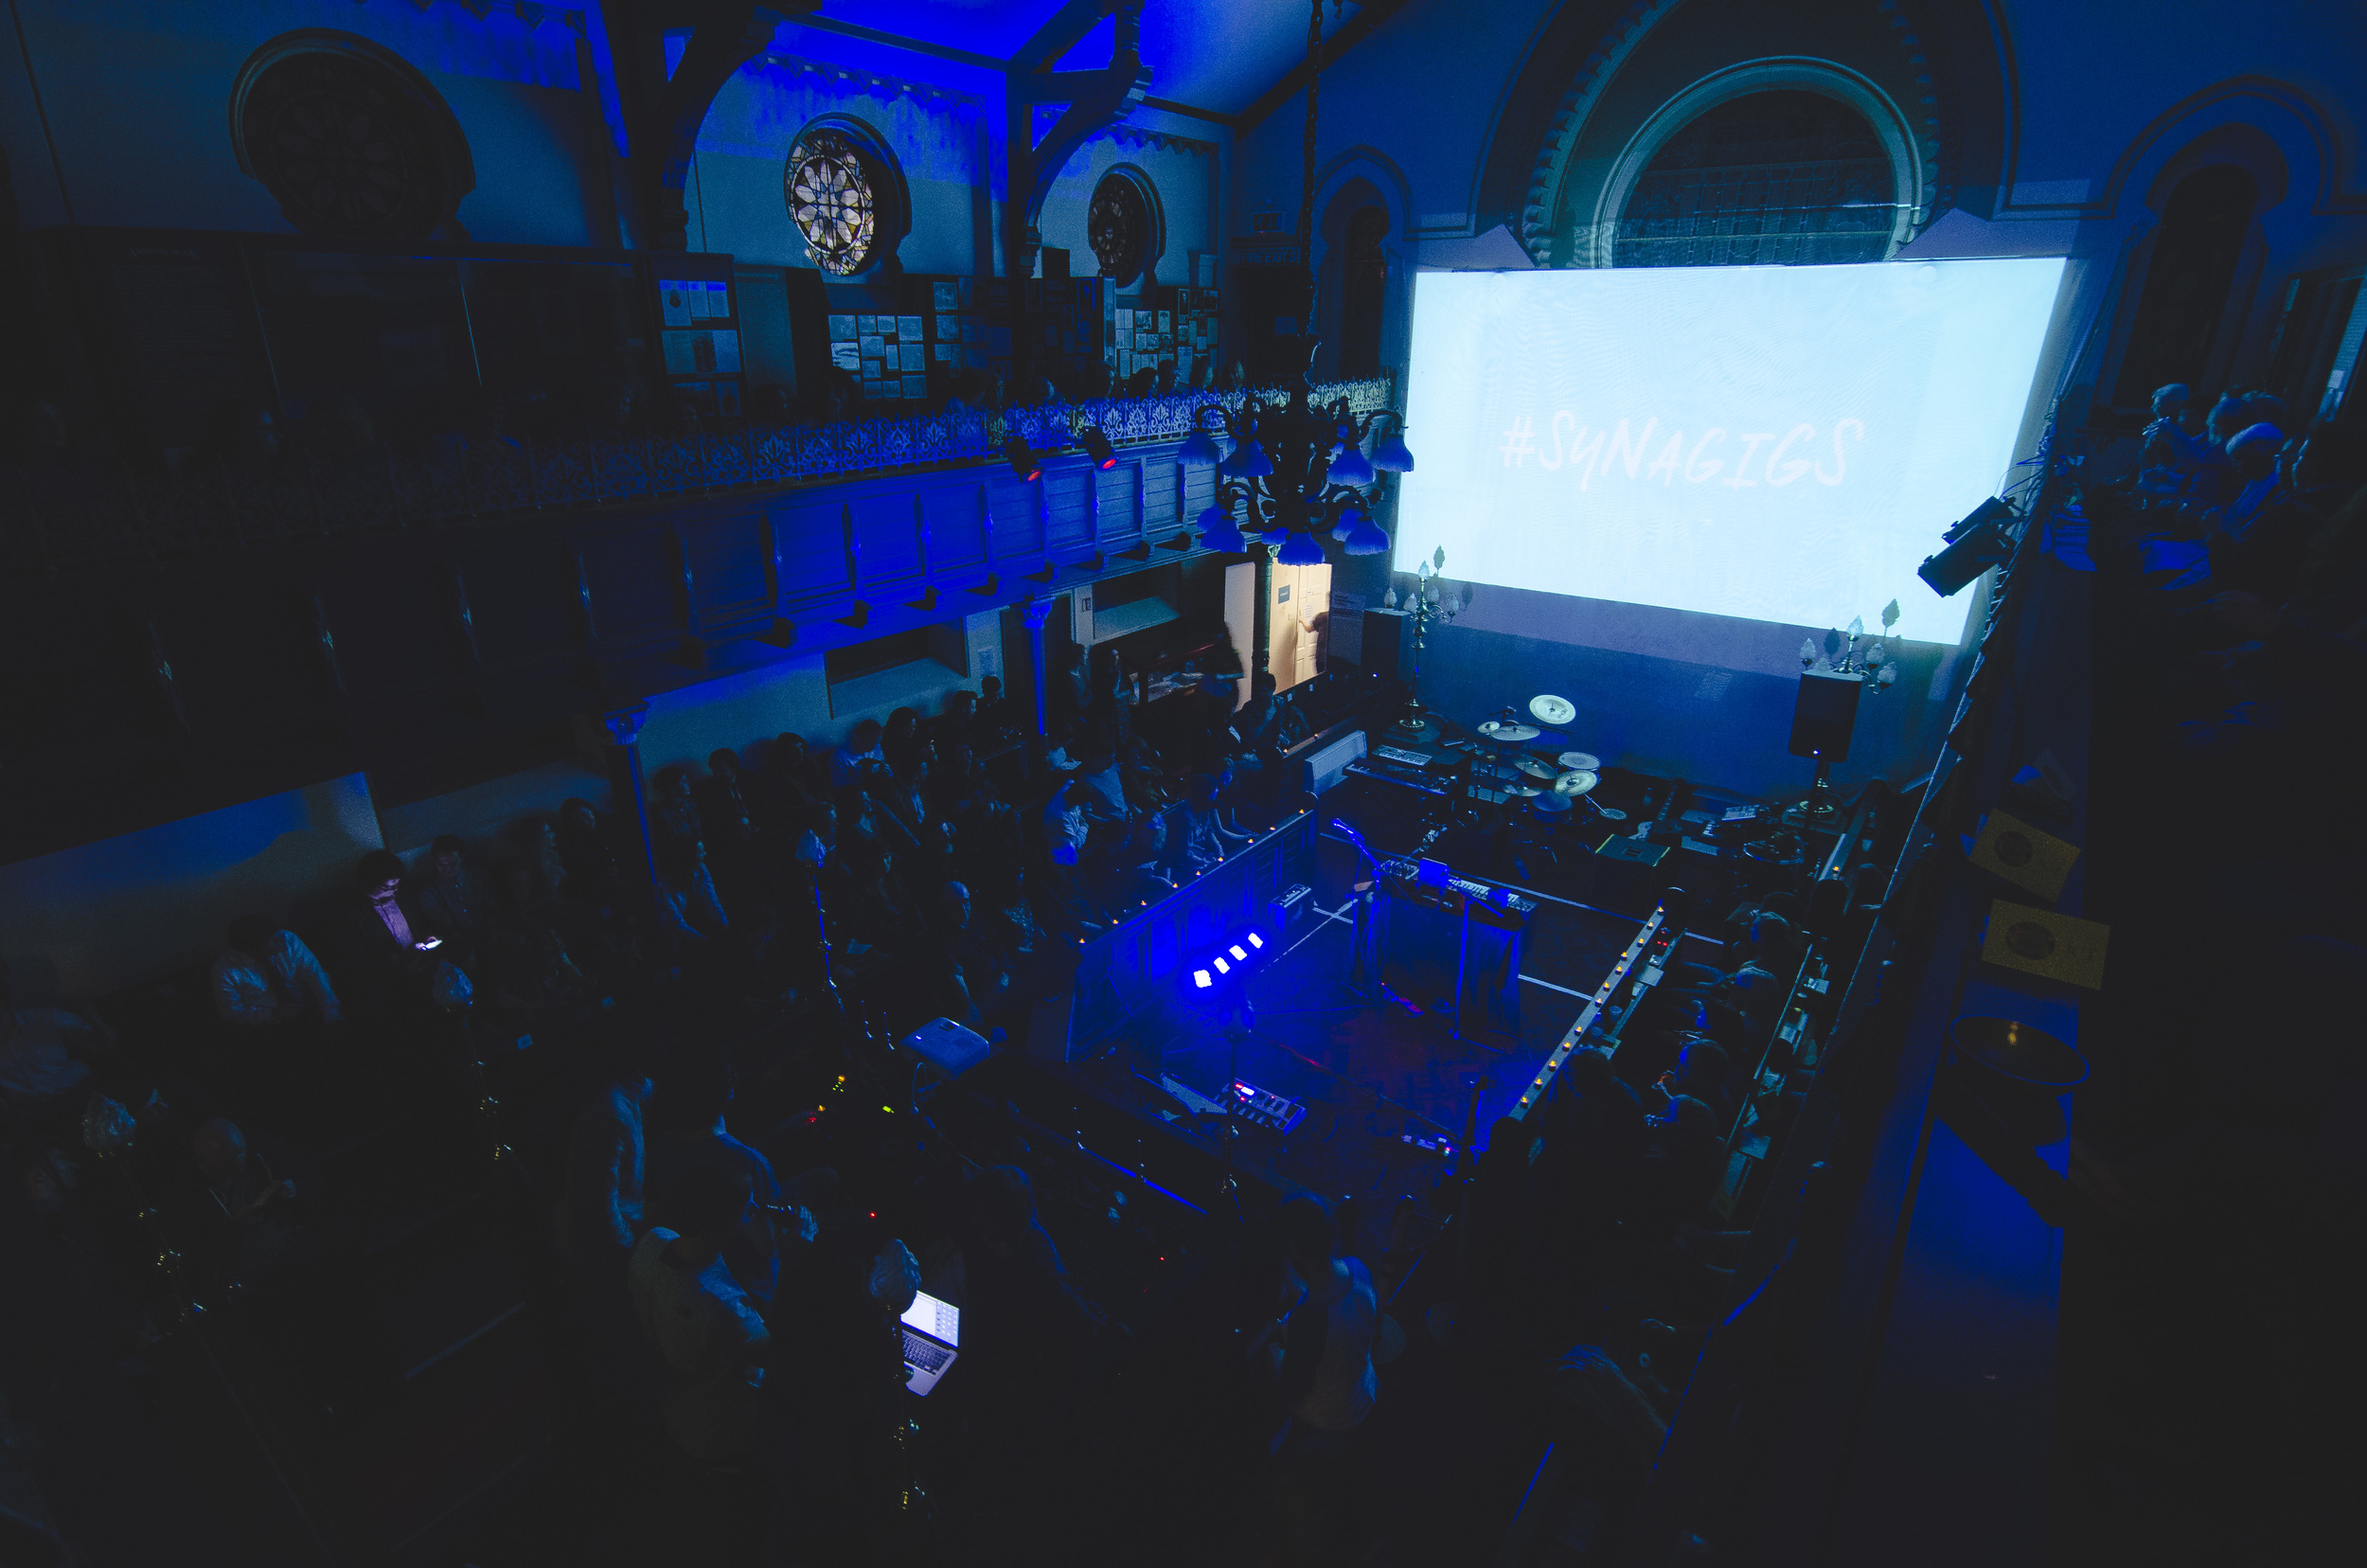 Image of the Video Jam event as part of the Autumn 2015 #SynaGigs Series. Photo:  Drew Forsyth  .